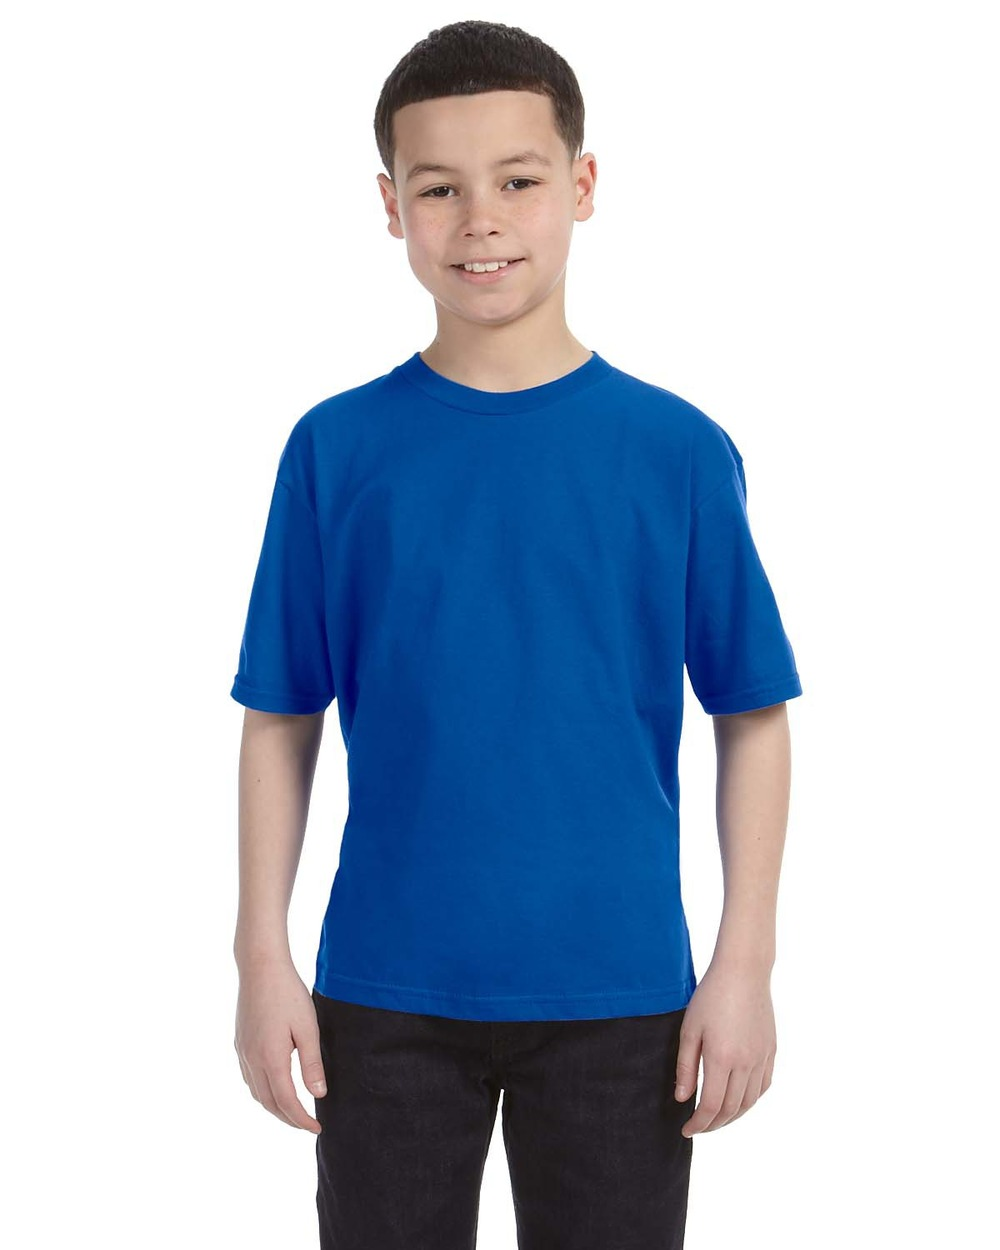 Anvil Crew Neck T-Shirt Youth